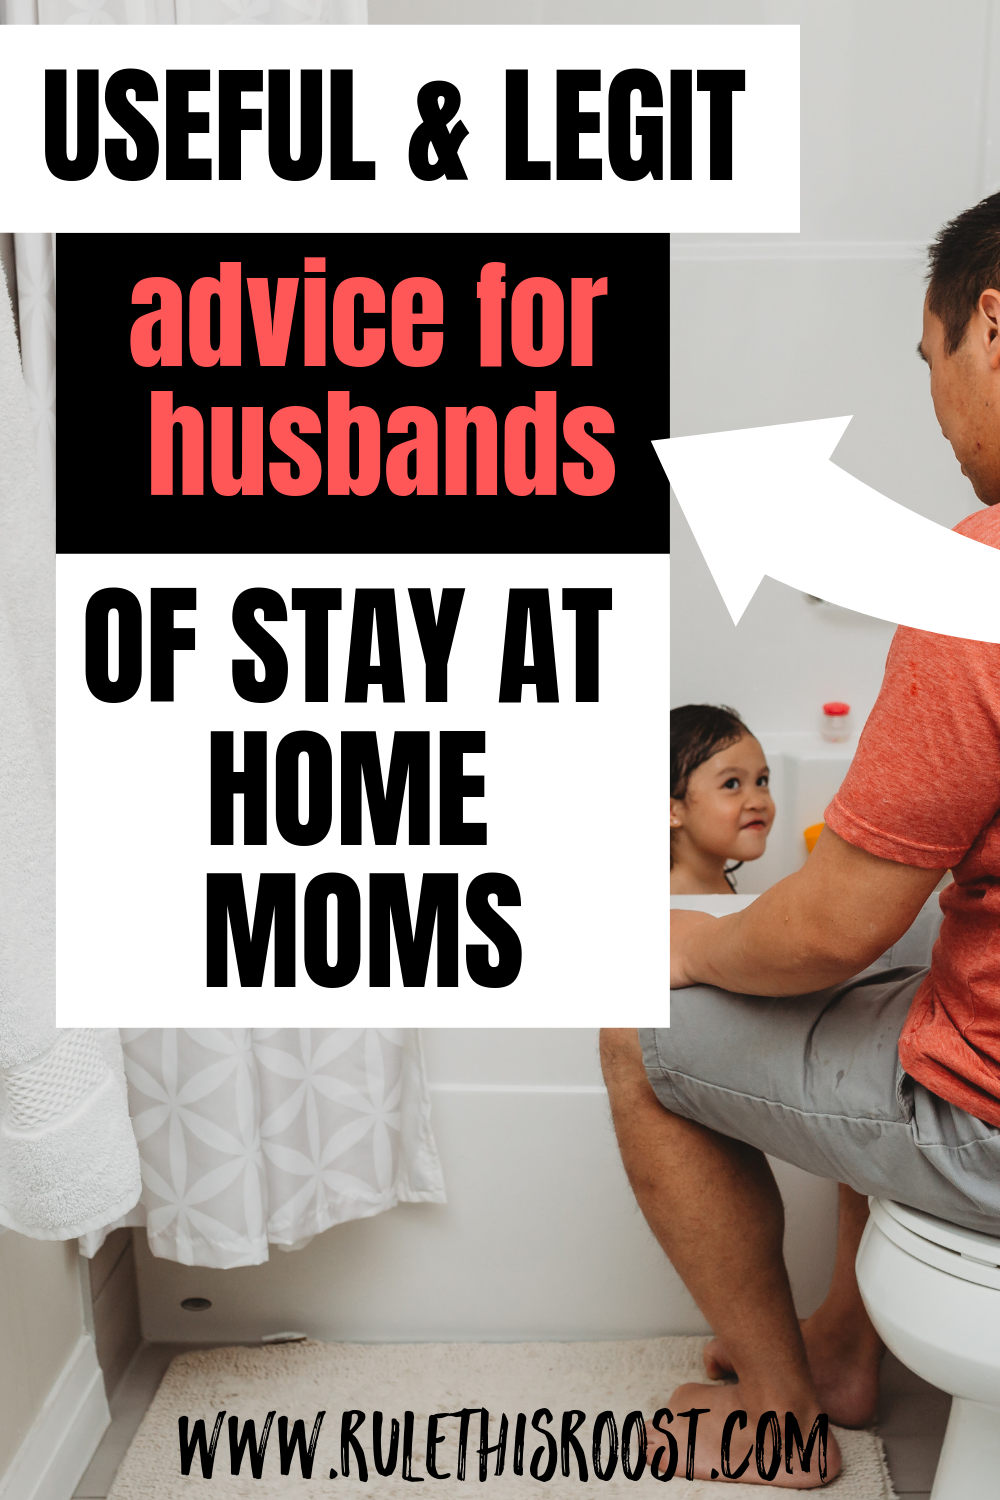 Advice for Husbands of Stay-at-Home Moms | Rule This Roost